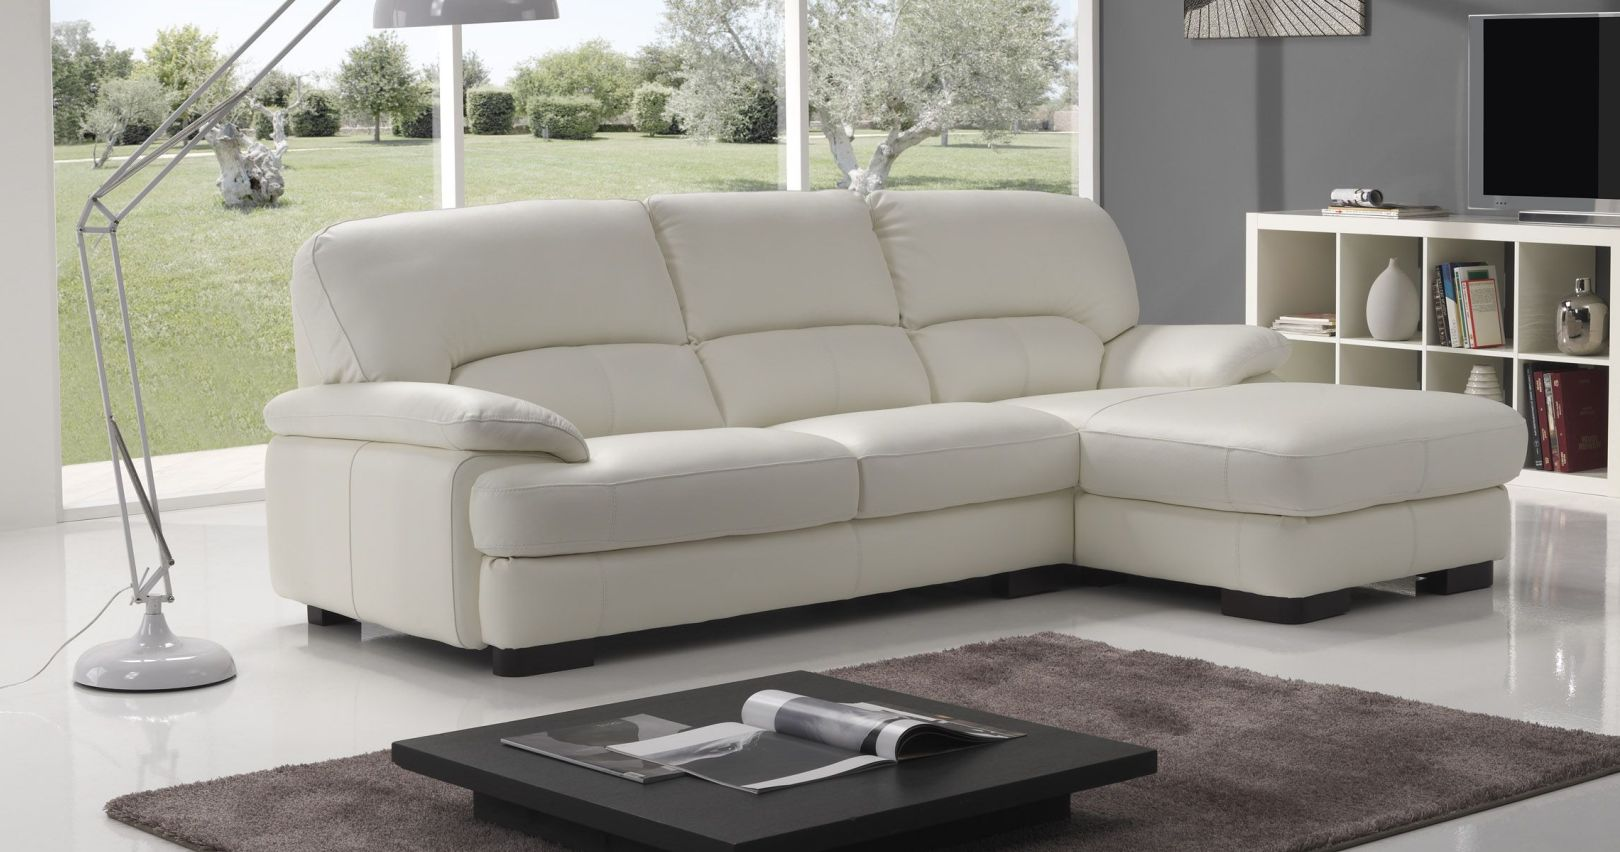 Canape angle cuir royal sofa id e de canap et meuble for Meuble de canape